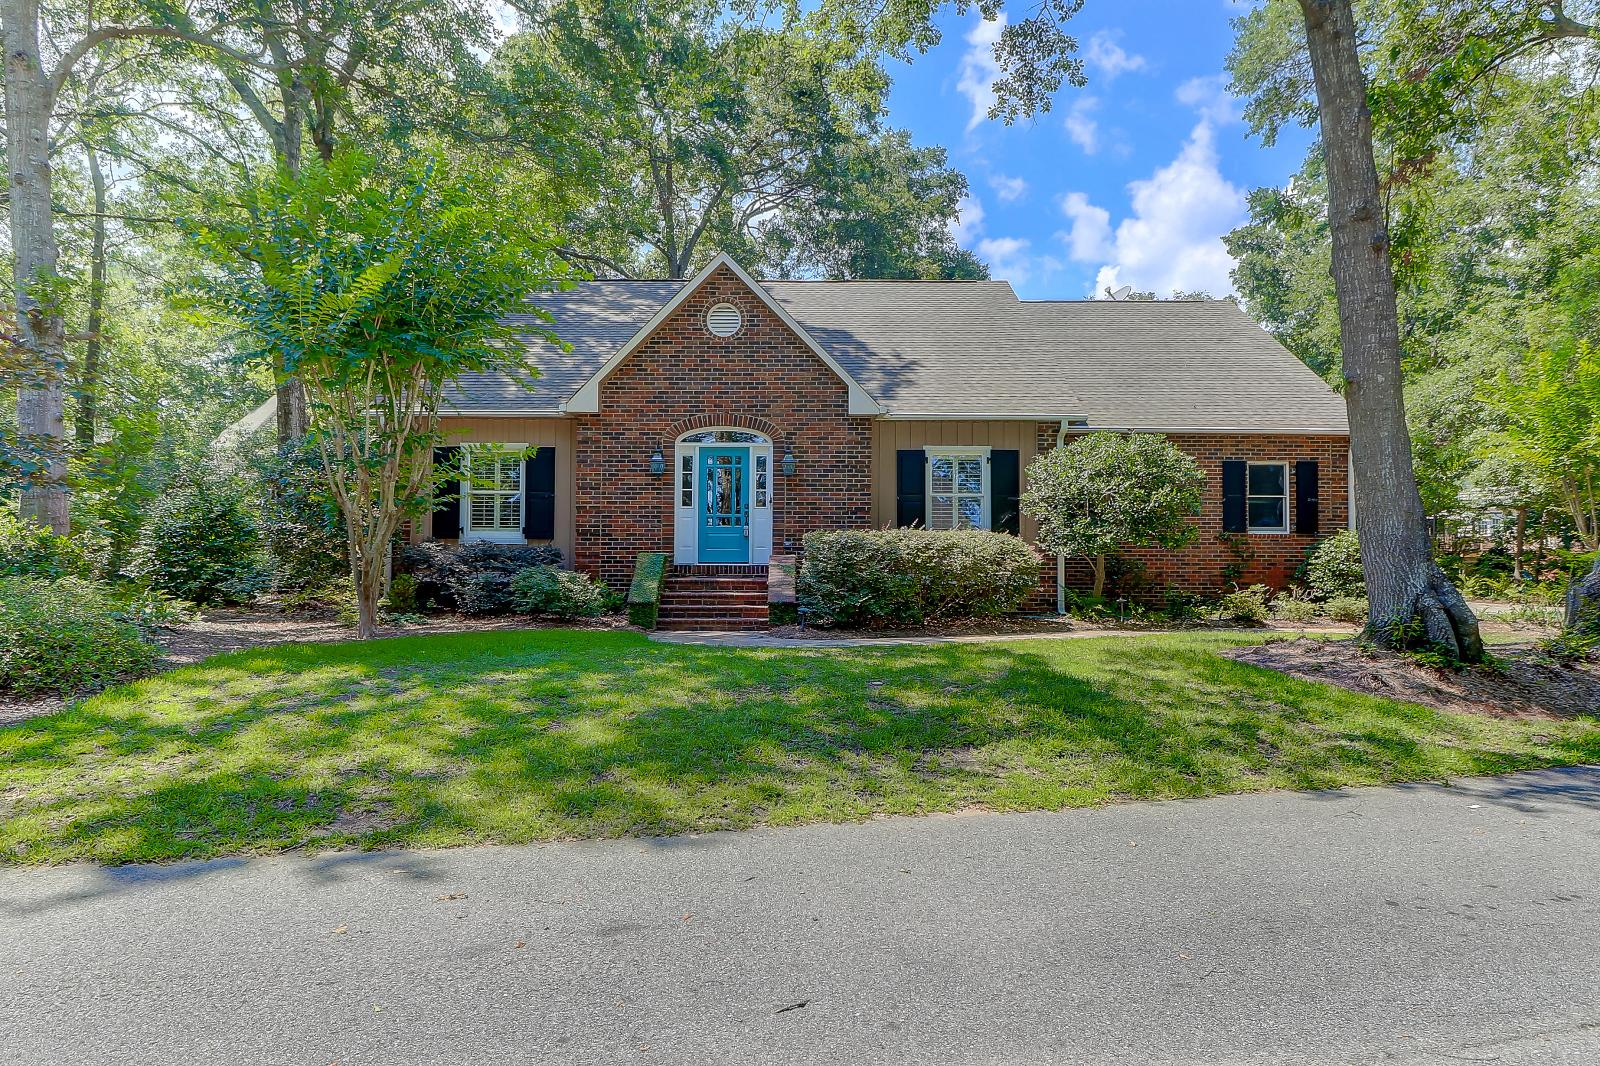 Local Real Estate Homes For Sale Plantation At Stono Ferry Sc 33976 Fuel Filter Coldwell Banker